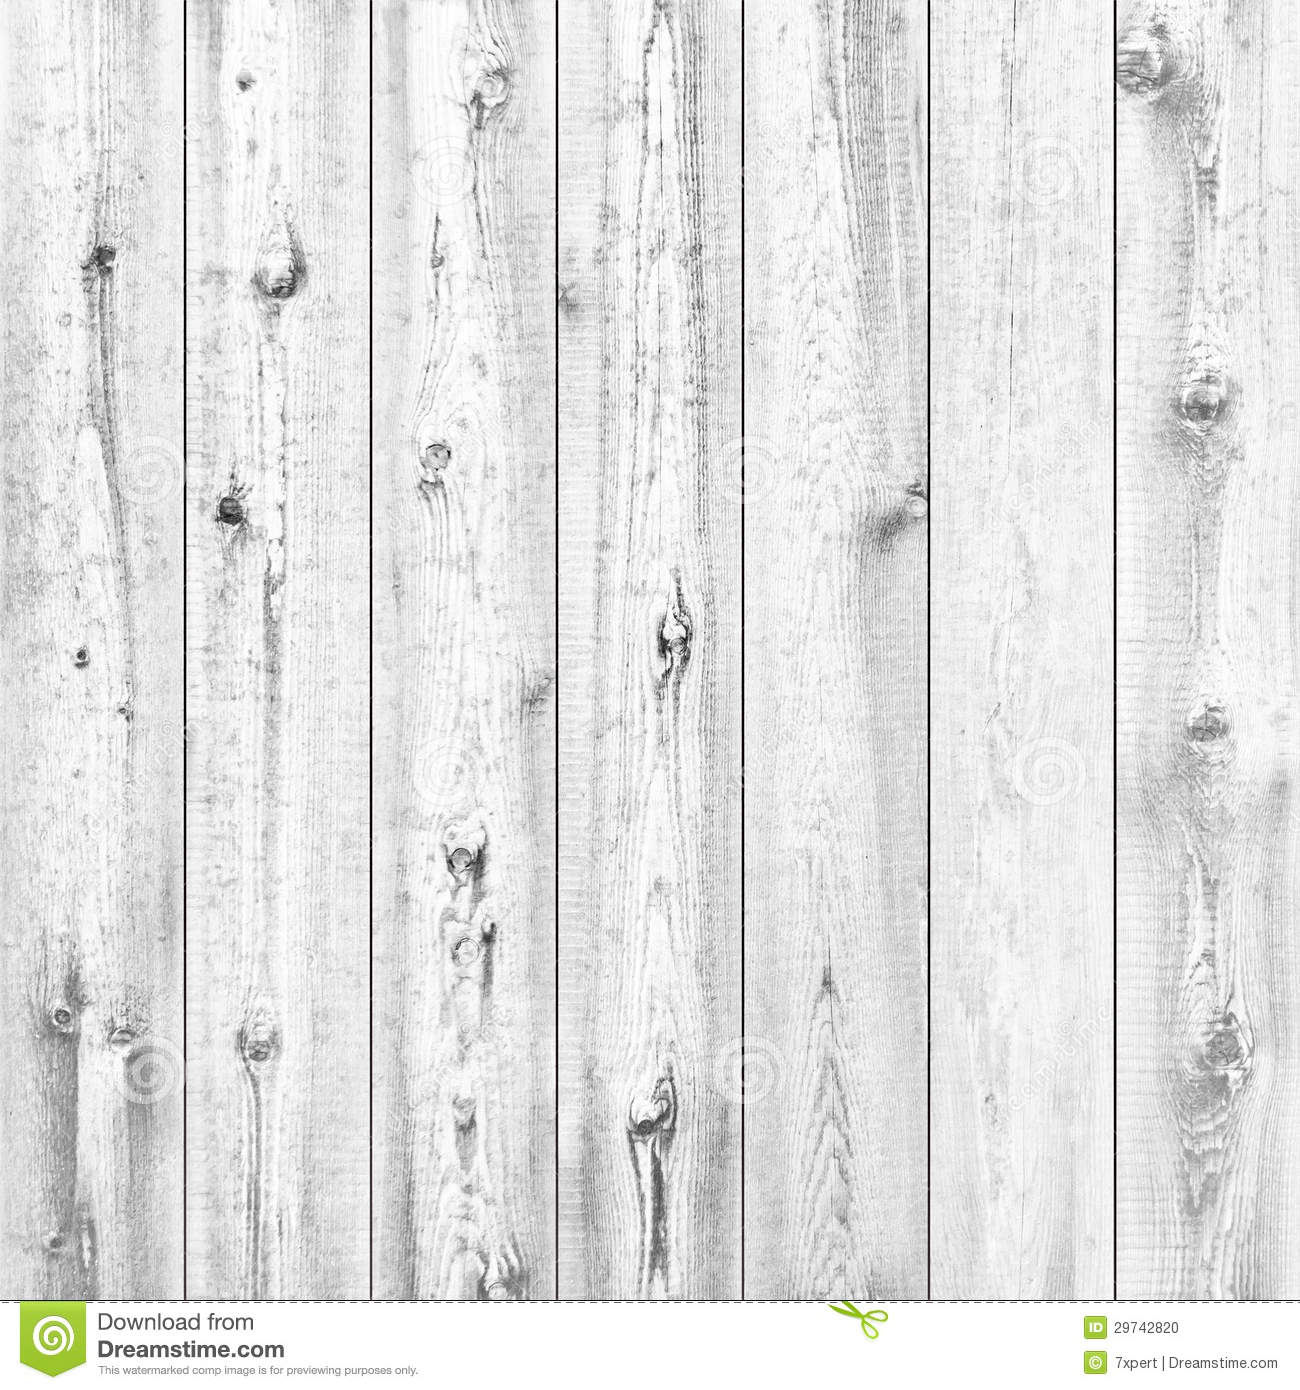 black and white wood texture stock photo image of empty texture 29742820. Black Bedroom Furniture Sets. Home Design Ideas